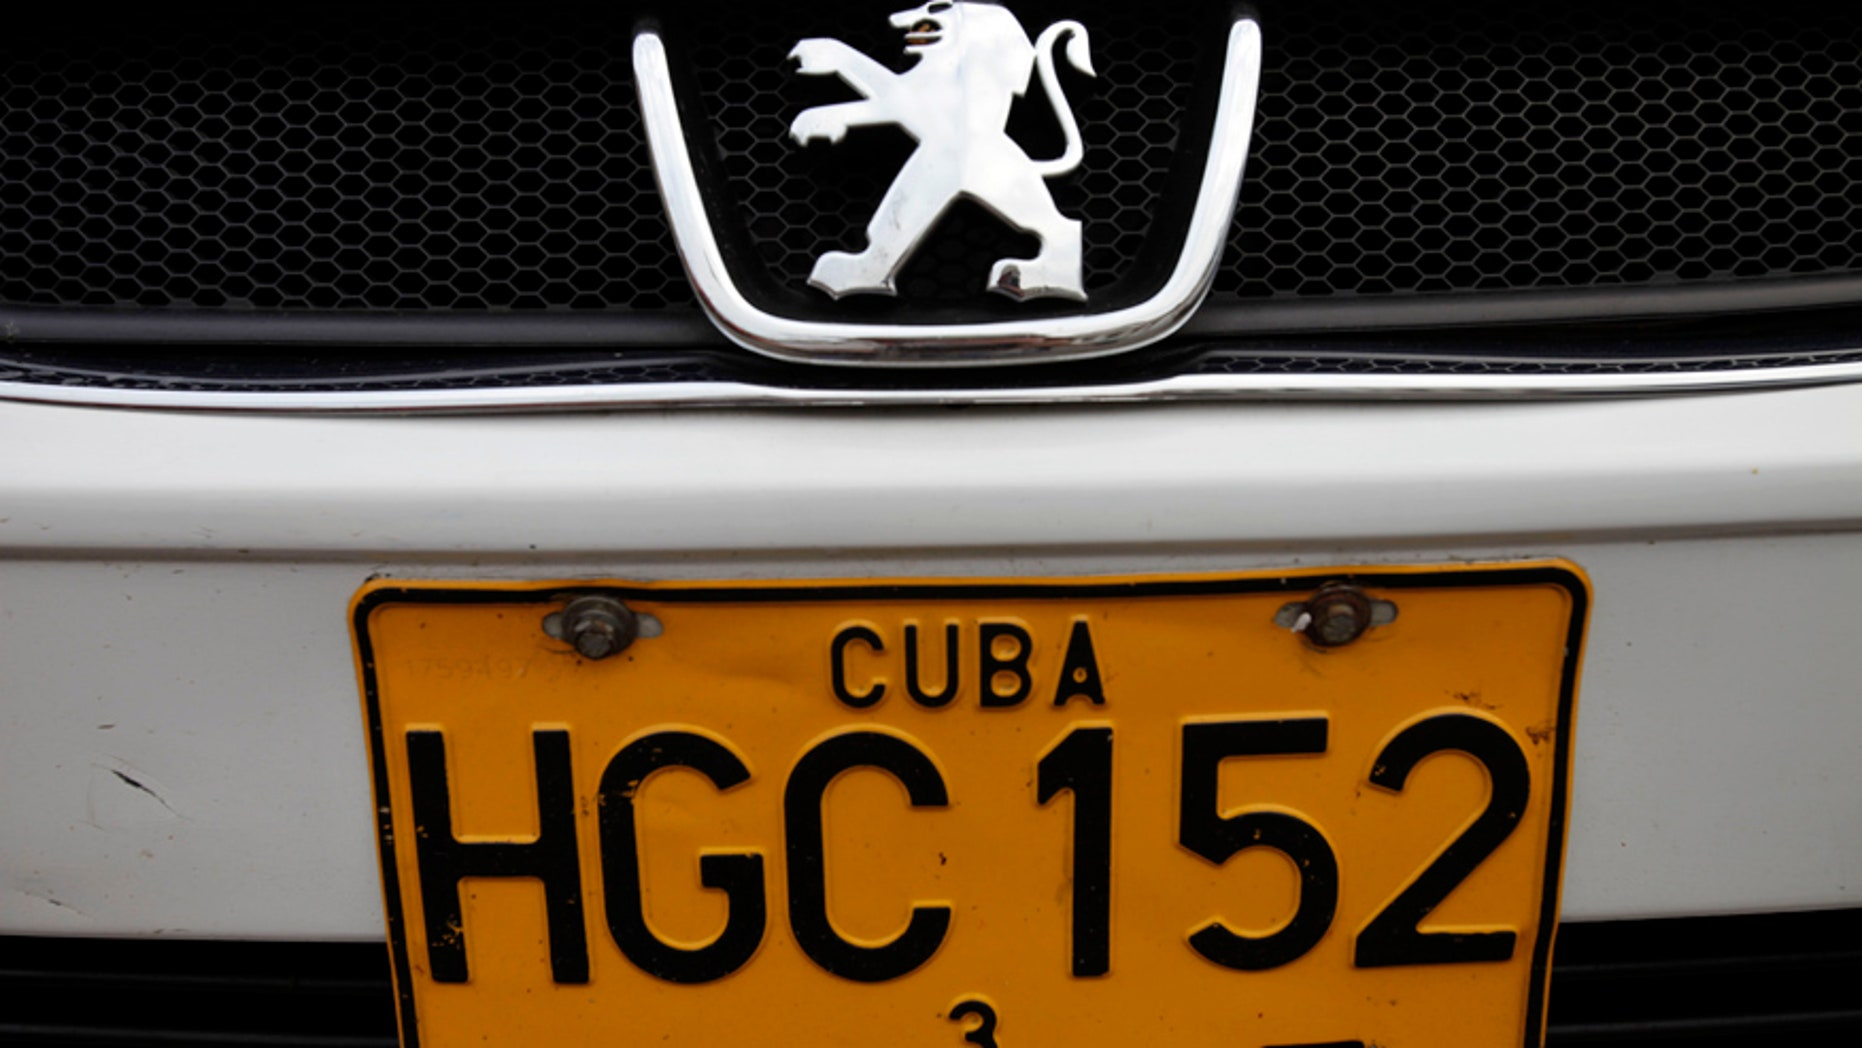 FILE - This Dec. 19, 2013 file photo shows a detail of a license plate on a Peugeot as it drives by in Havana, Cuba. Cuban authorities reported on Monday, June 30, 2014 that auto dealerships have sold just 50 automobiles and four motorcycles across the country in the nearly six months since a new law took effect letting islanders buy vehicles without a special permit for the first time in decades. Many Cubans were delighted when the new rules were announced in December 2013, and then left aghast by the sticker prices once they took effect. Most Cubans earn about $20 a month. (AP Photo/Franklin Reyes, File)